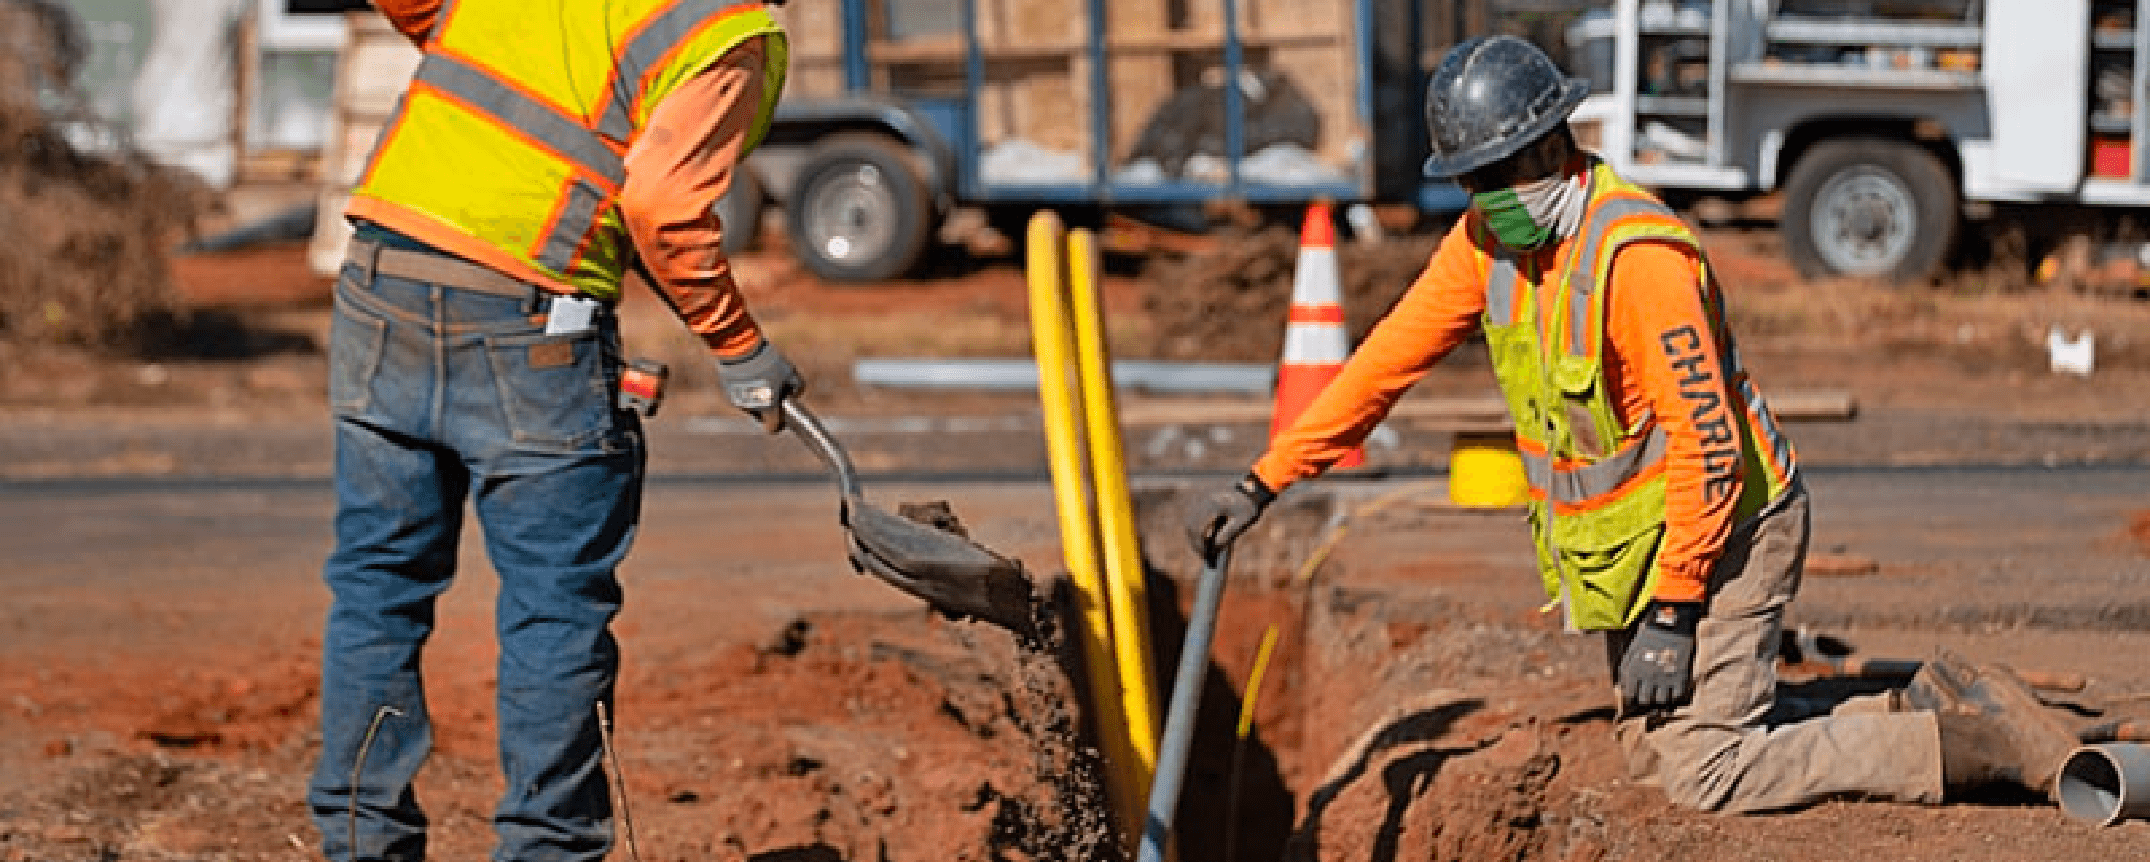 Charge workers in hard hats